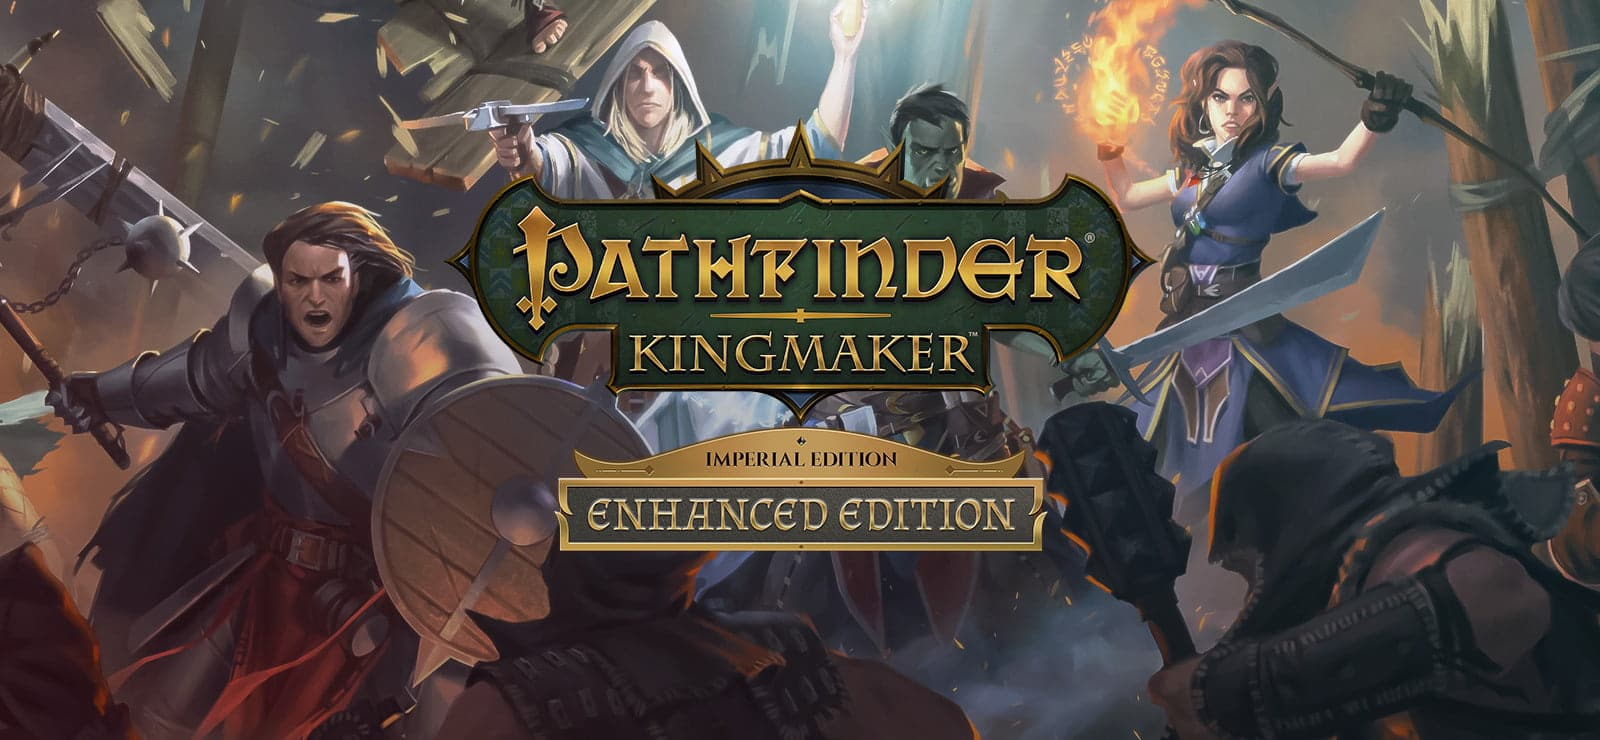 Pathfinder Kingmaker: Guide to complete Quest Green Stone